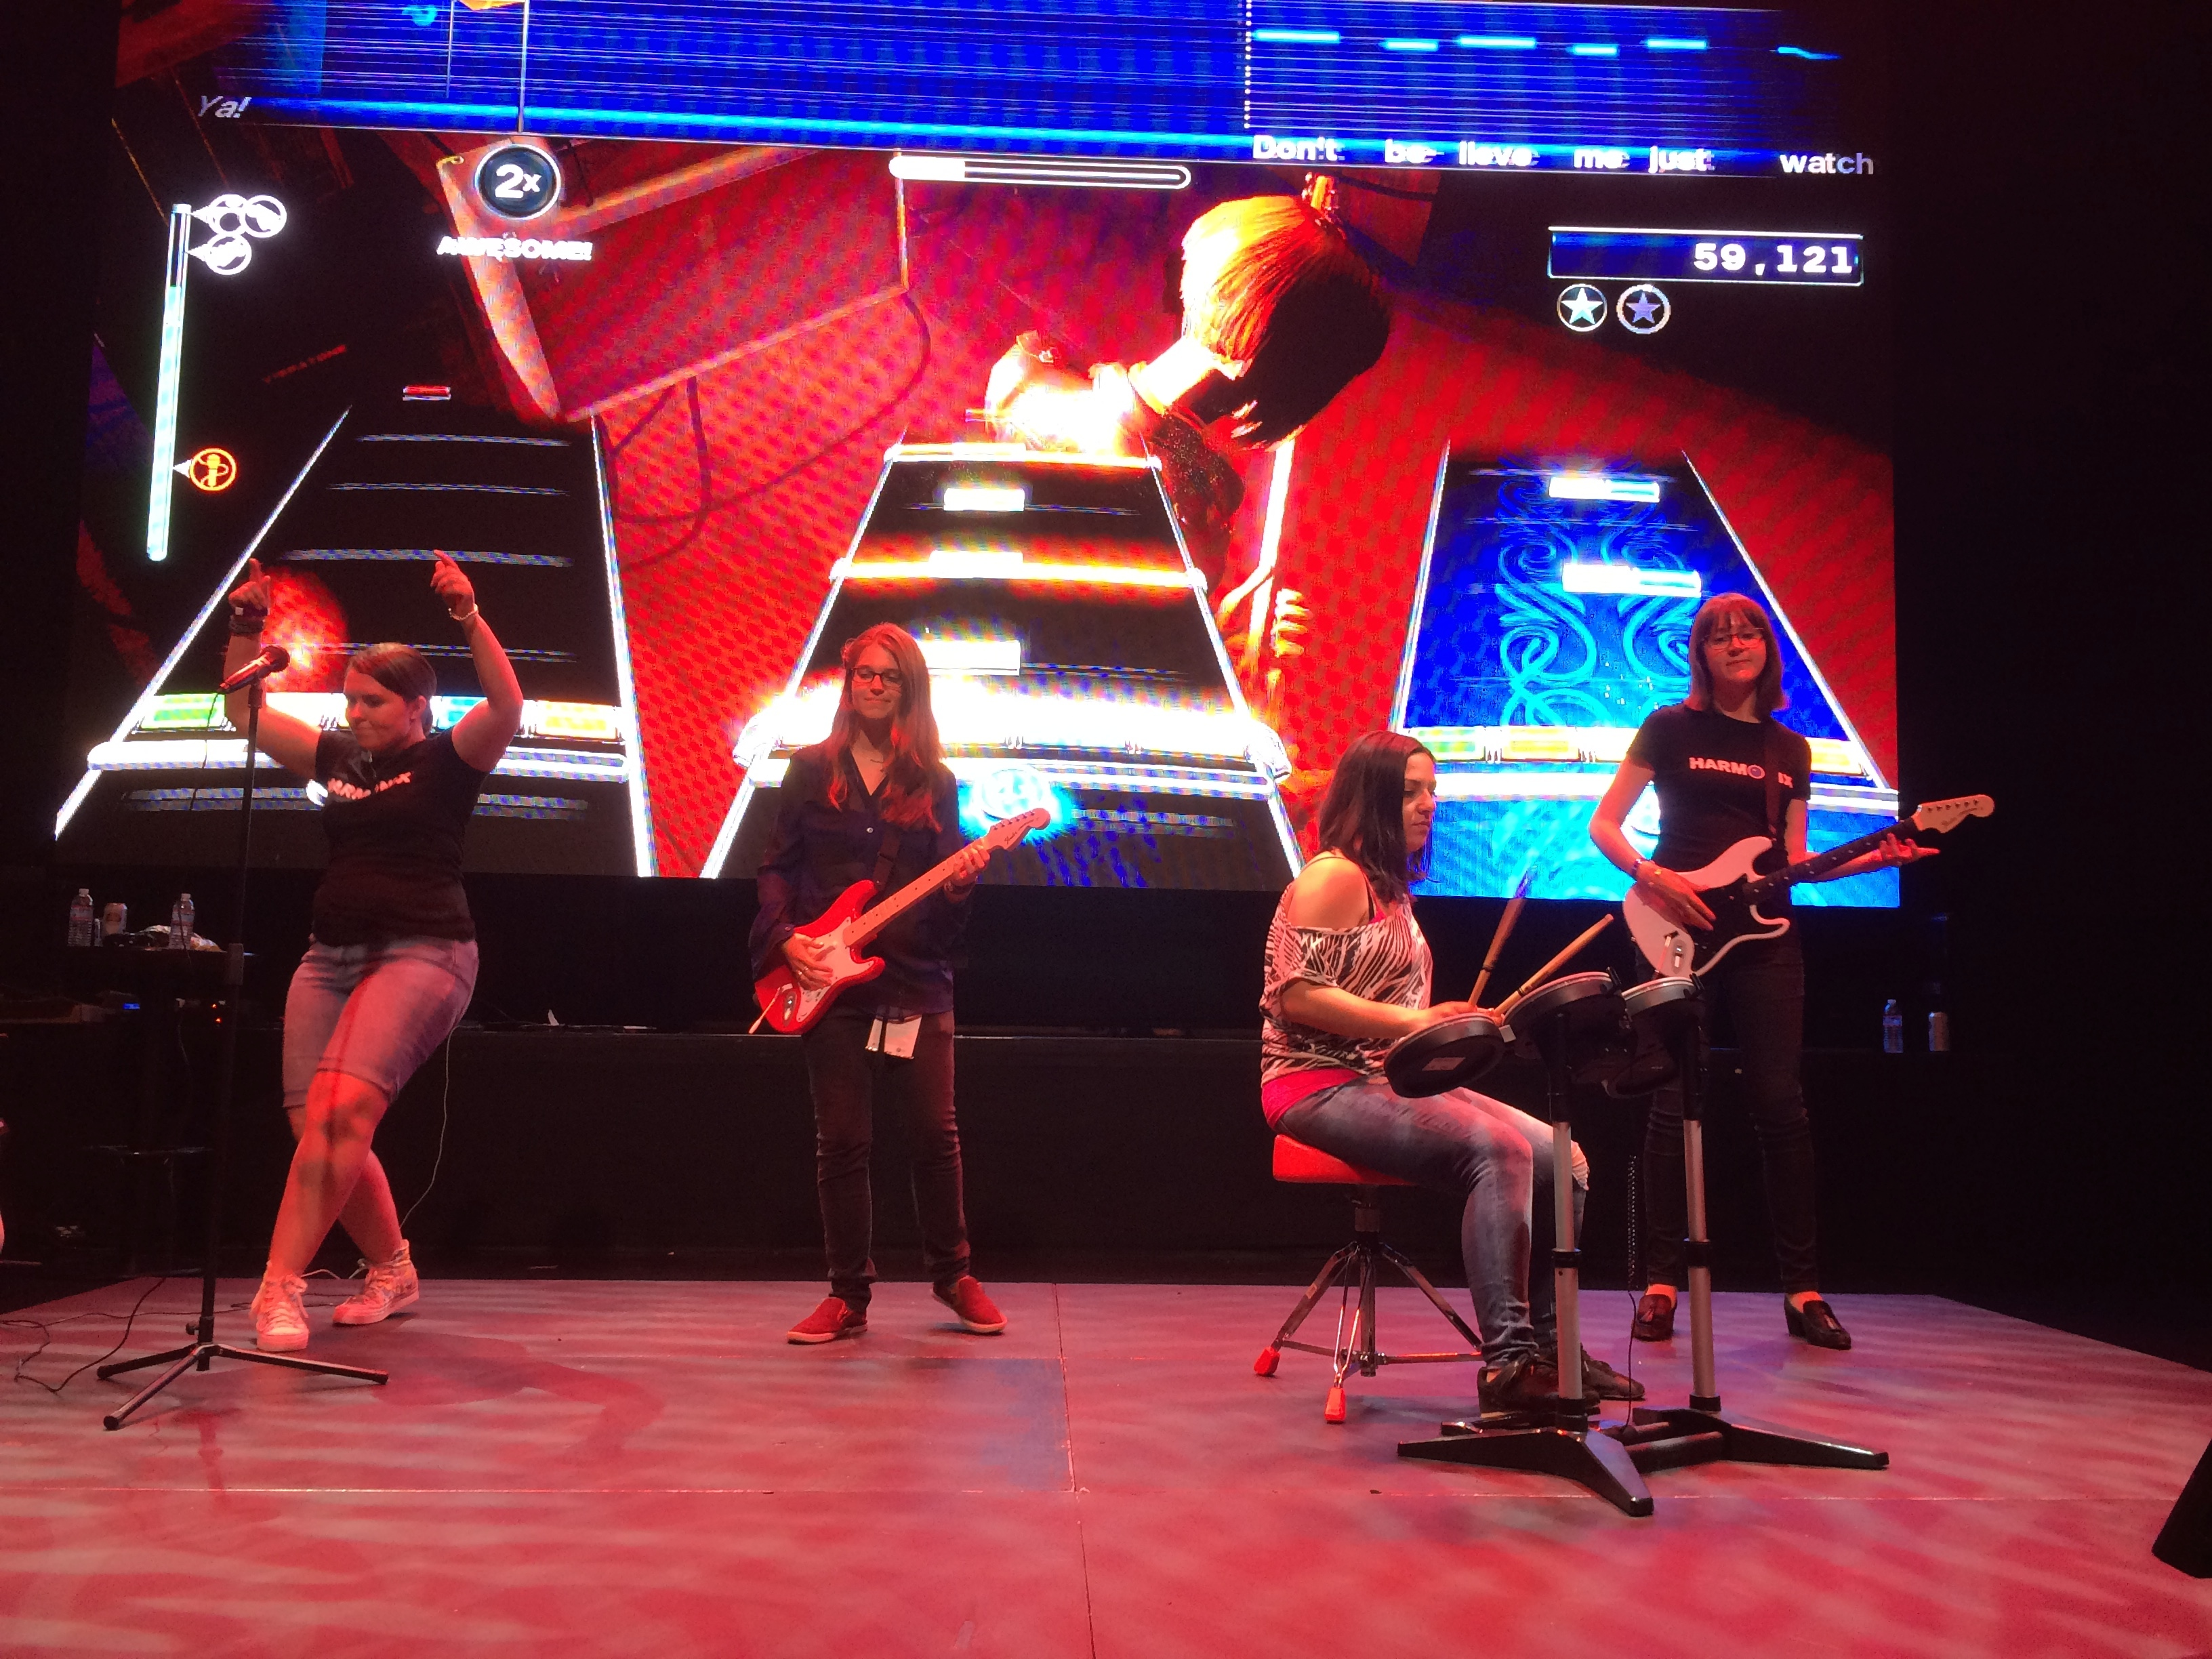 Members of the Rock Band 4 development team at Harmonix rock out at E3 2015.